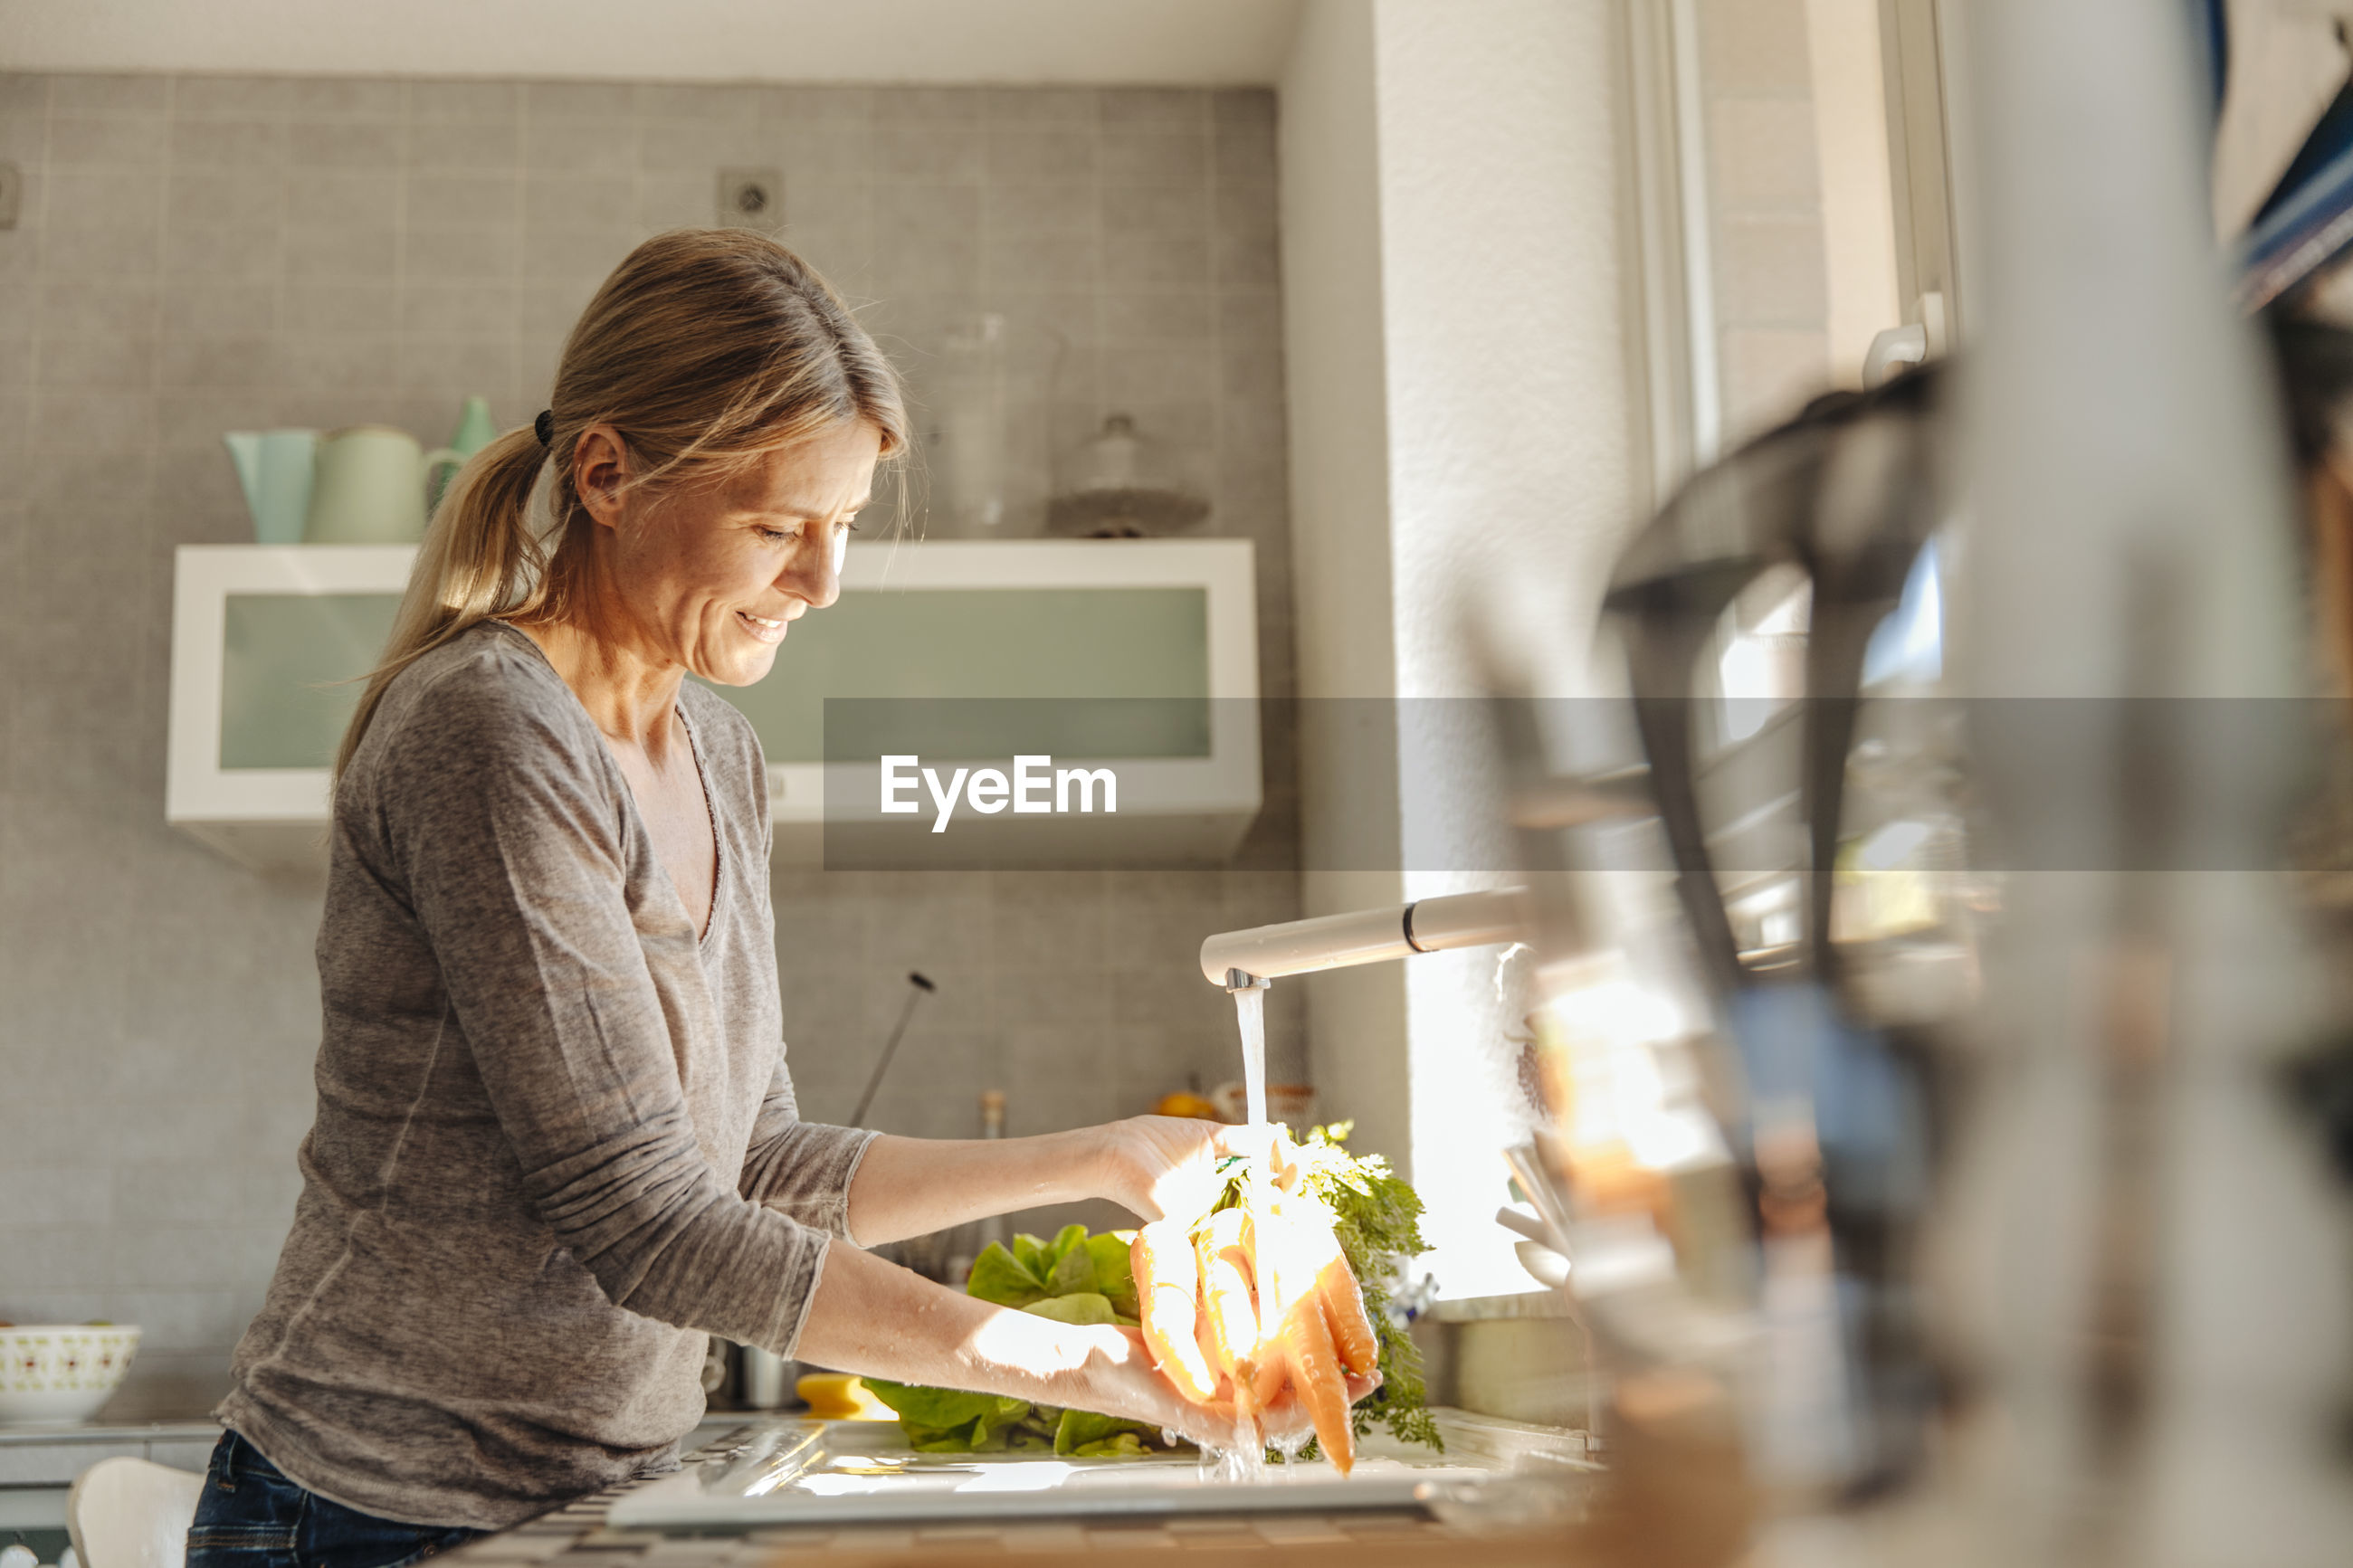 SIDE VIEW OF WOMAN STANDING IN FRONT OF KITCHEN